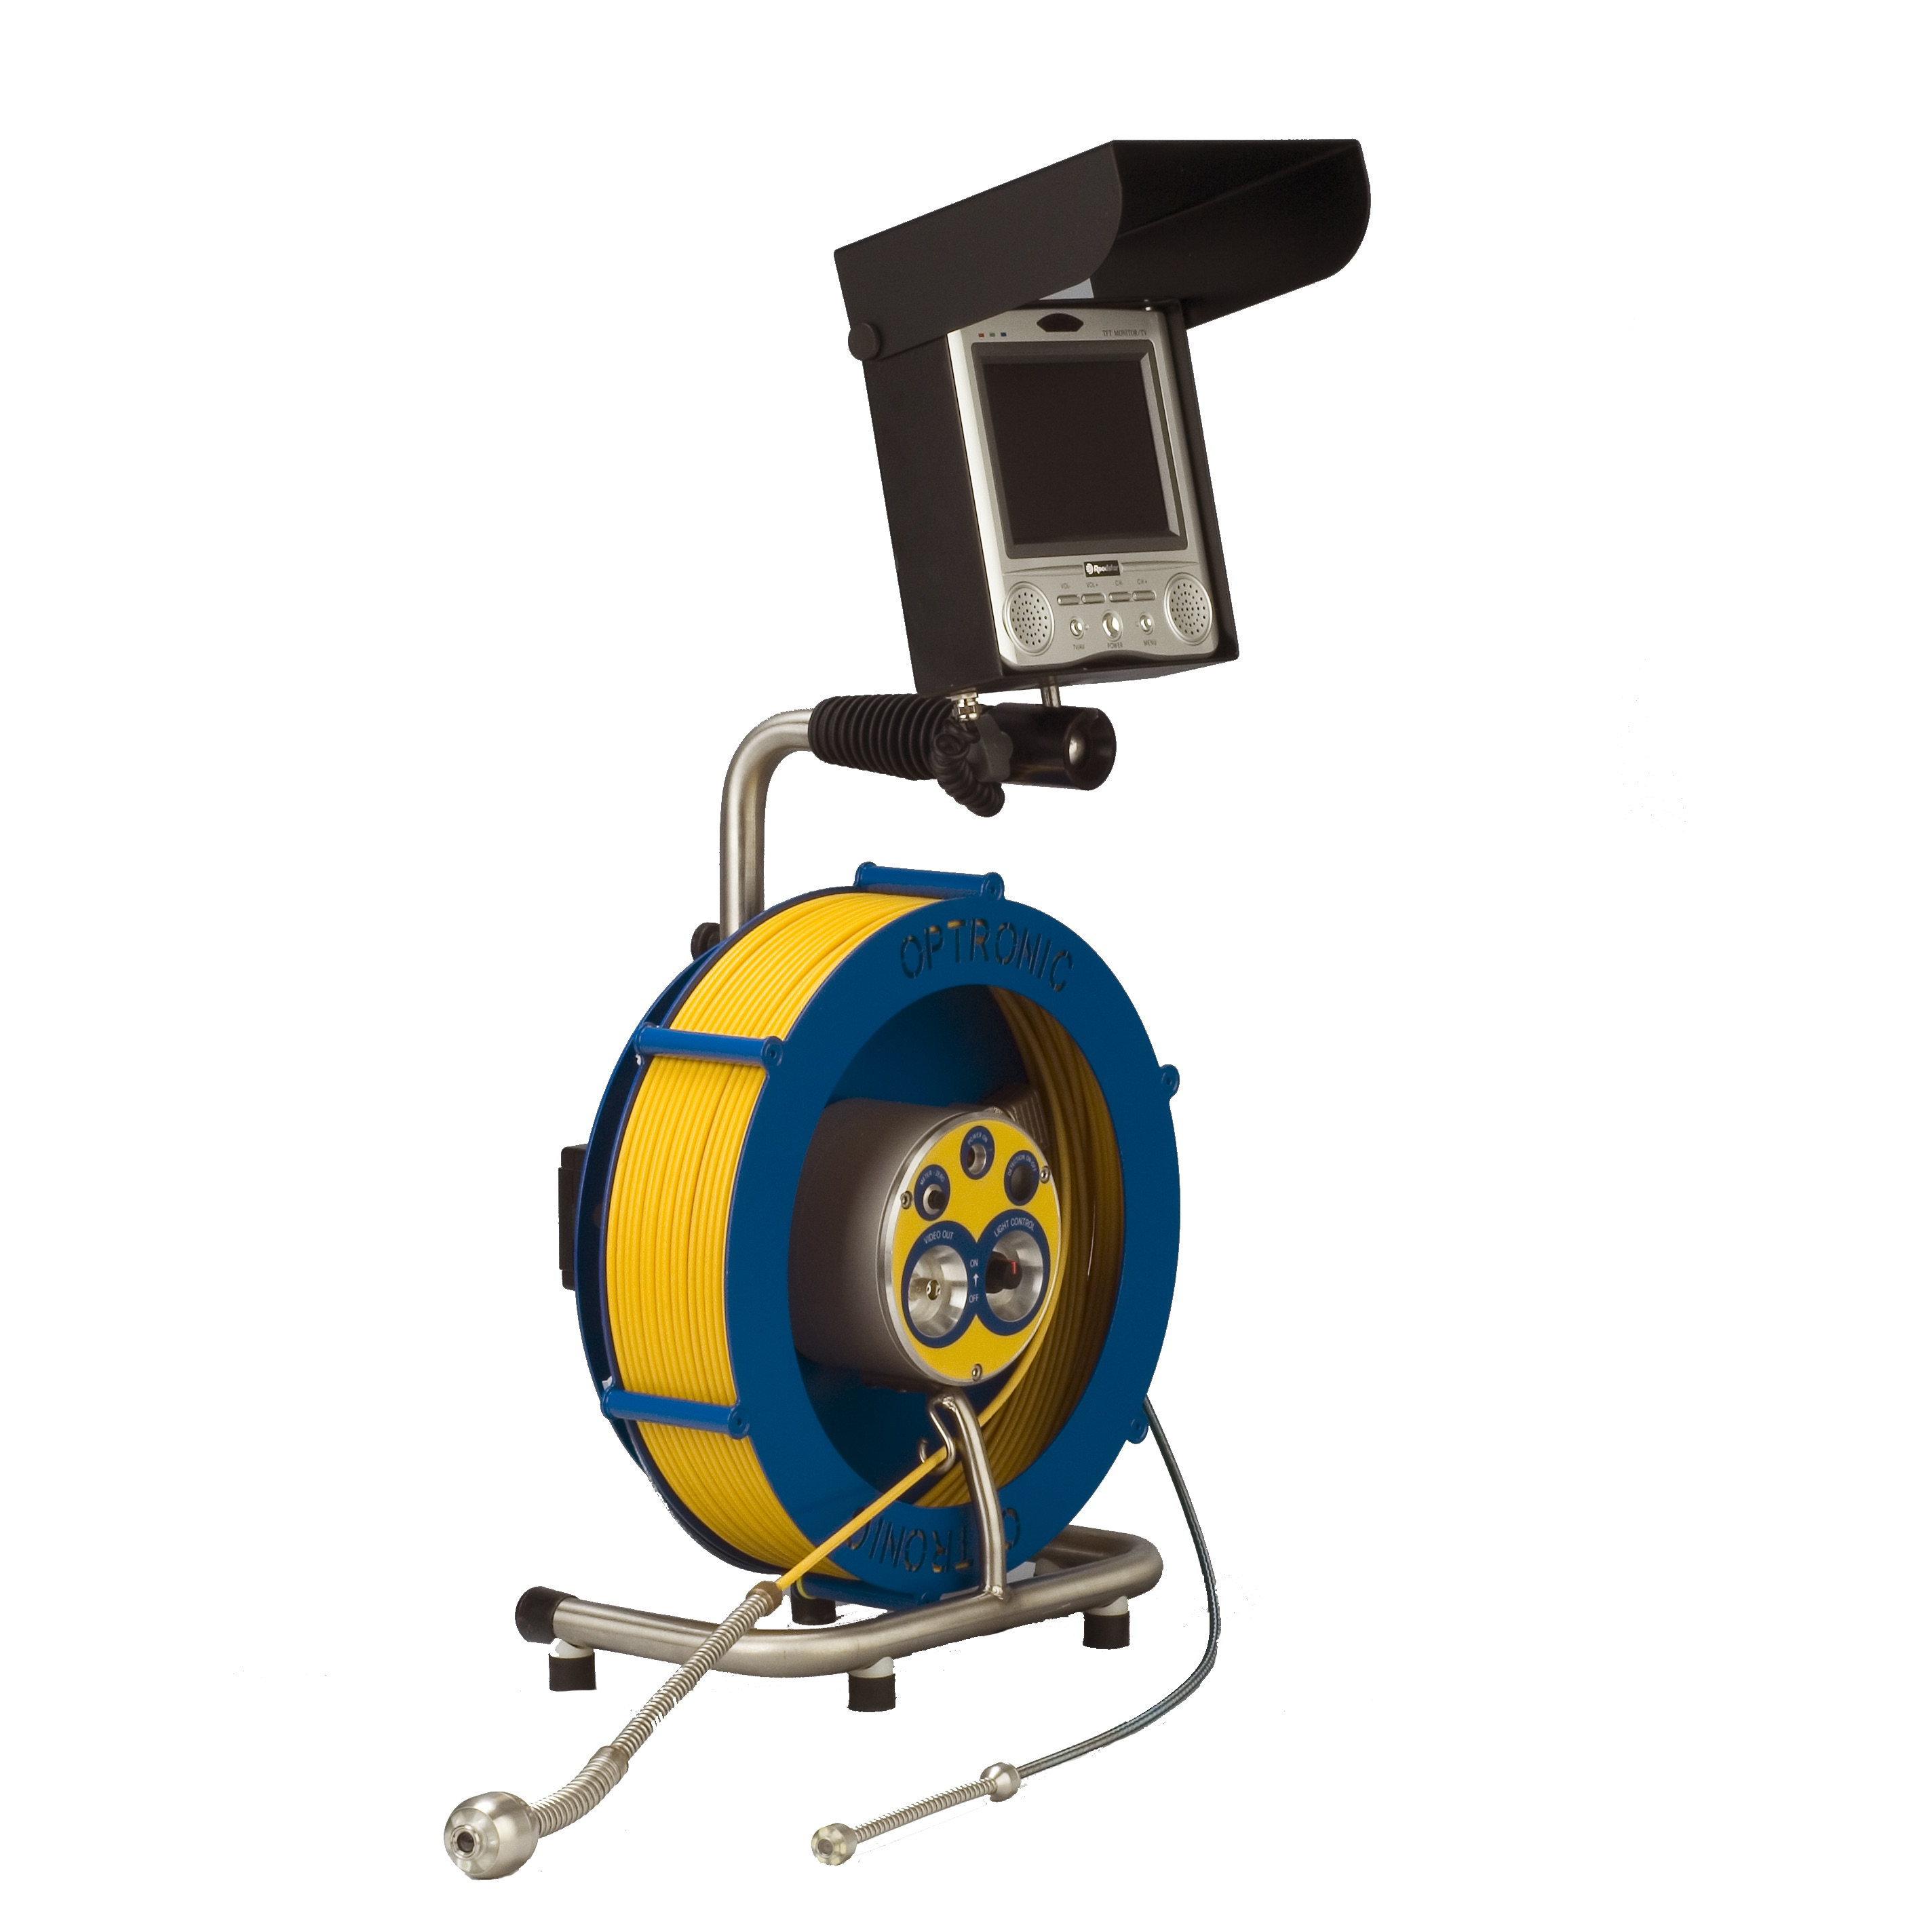 Kombi inspection camera is a light weight and portable remote visual inspection camera for industrial applications